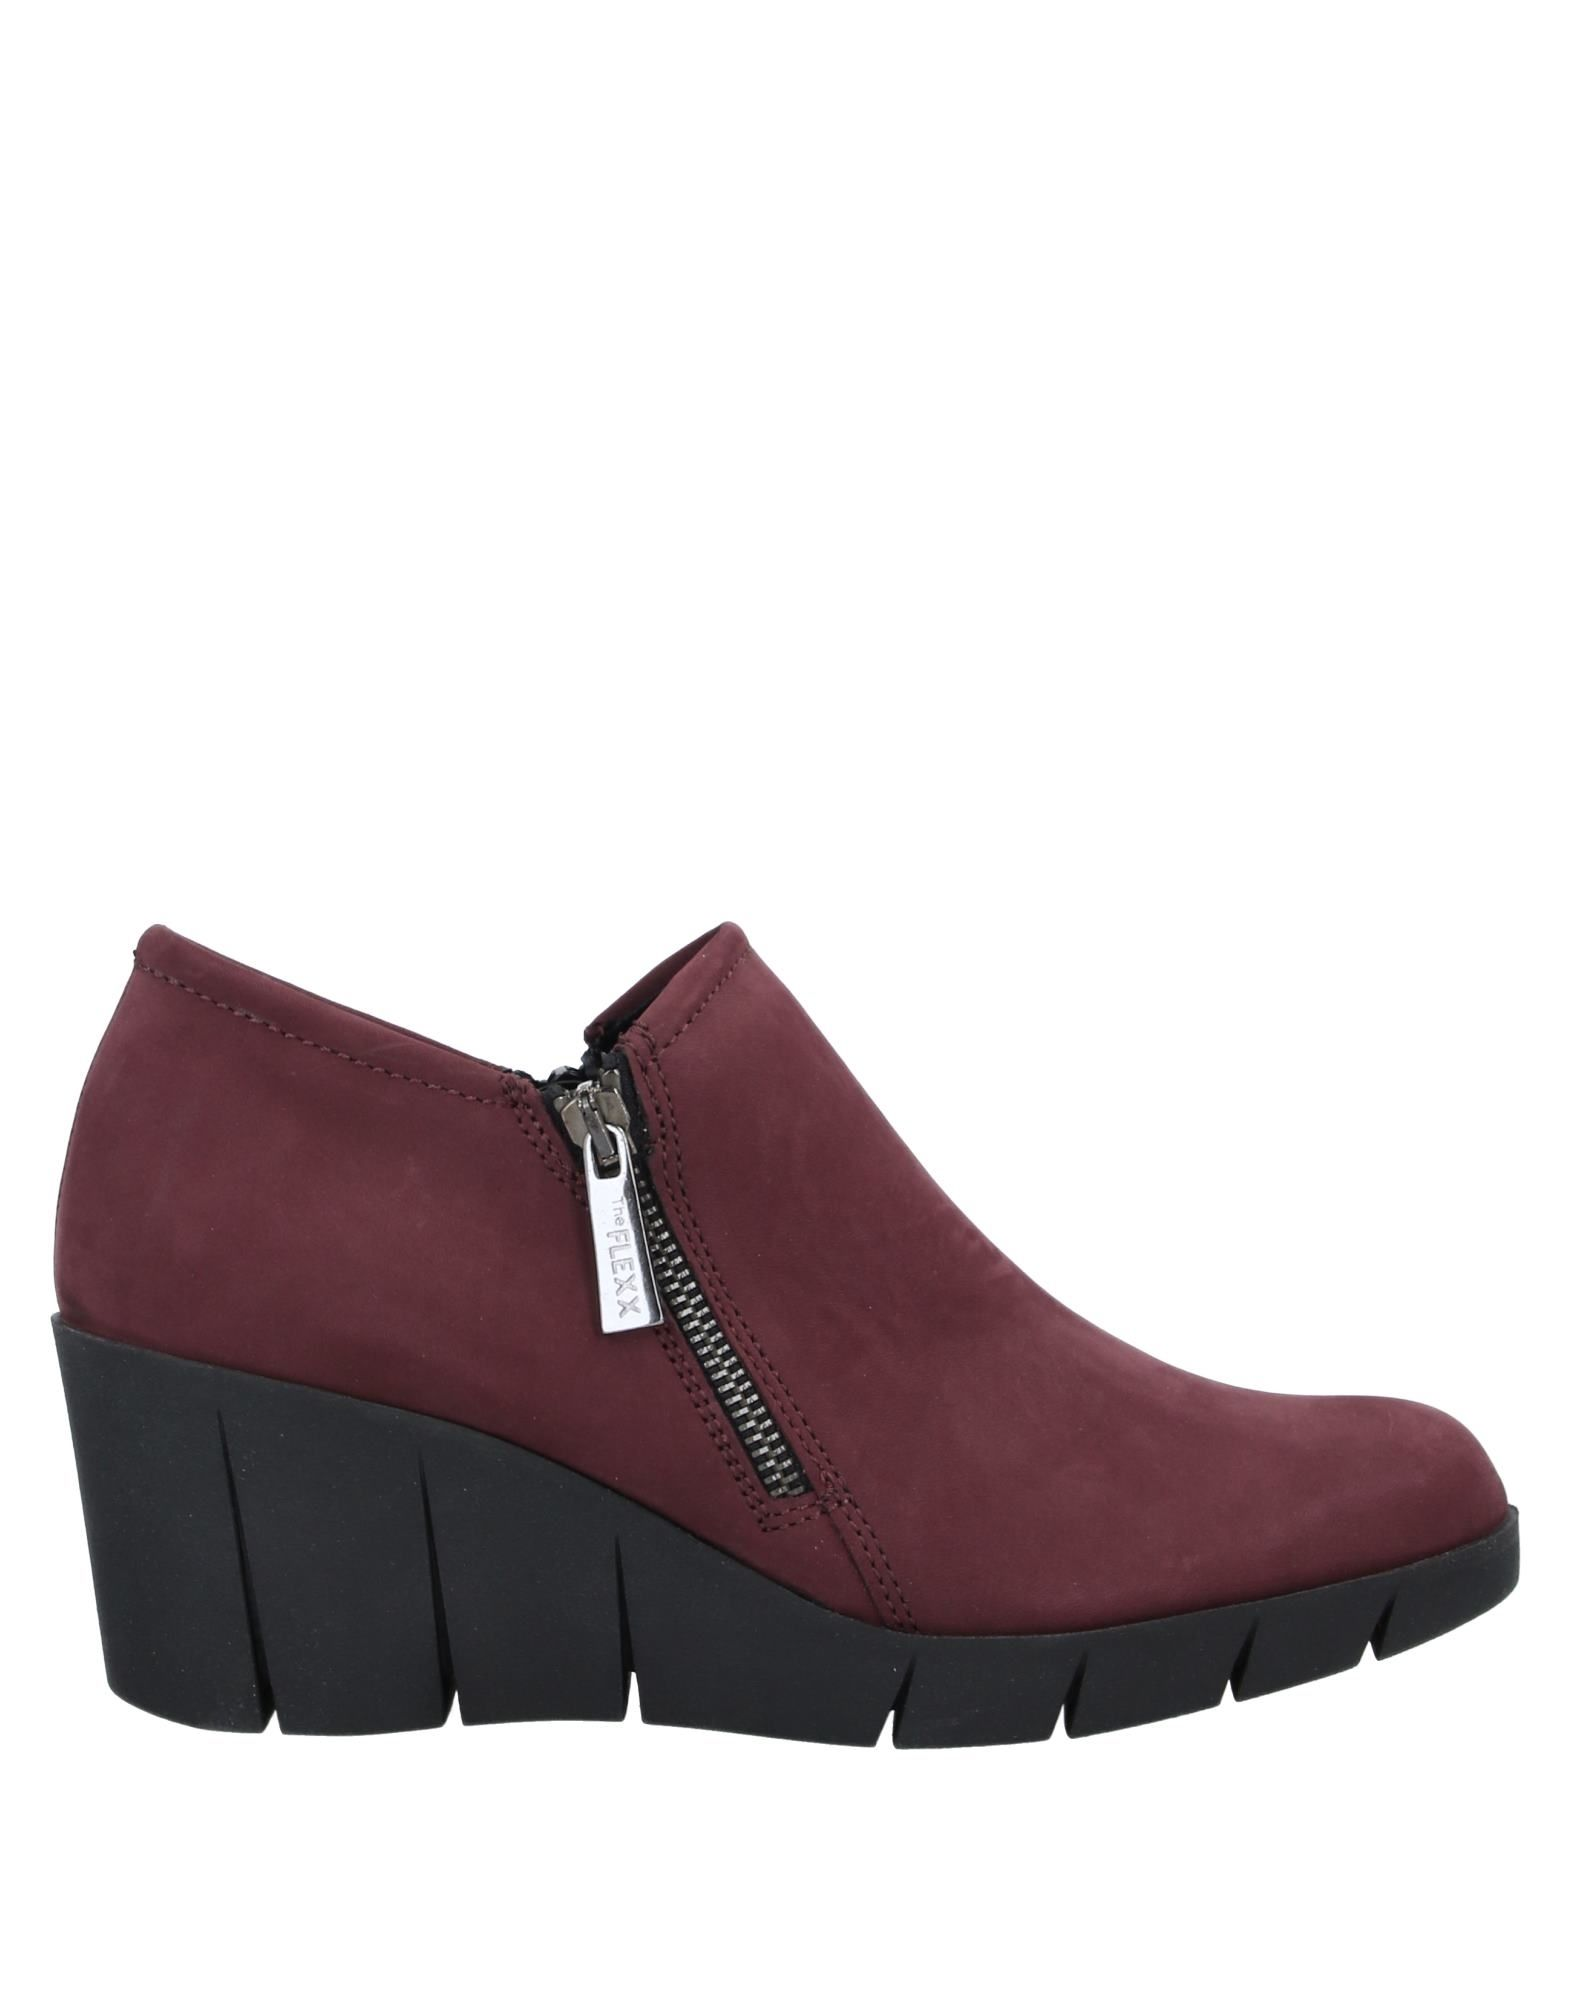 THE FLEXX Booties. leather, suede effect, logo, solid color, zipper closure, round toeline, wedge heel, rubber wedge, leather lining, rubber sole, contains non-textile parts of animal origin. Soft Leather